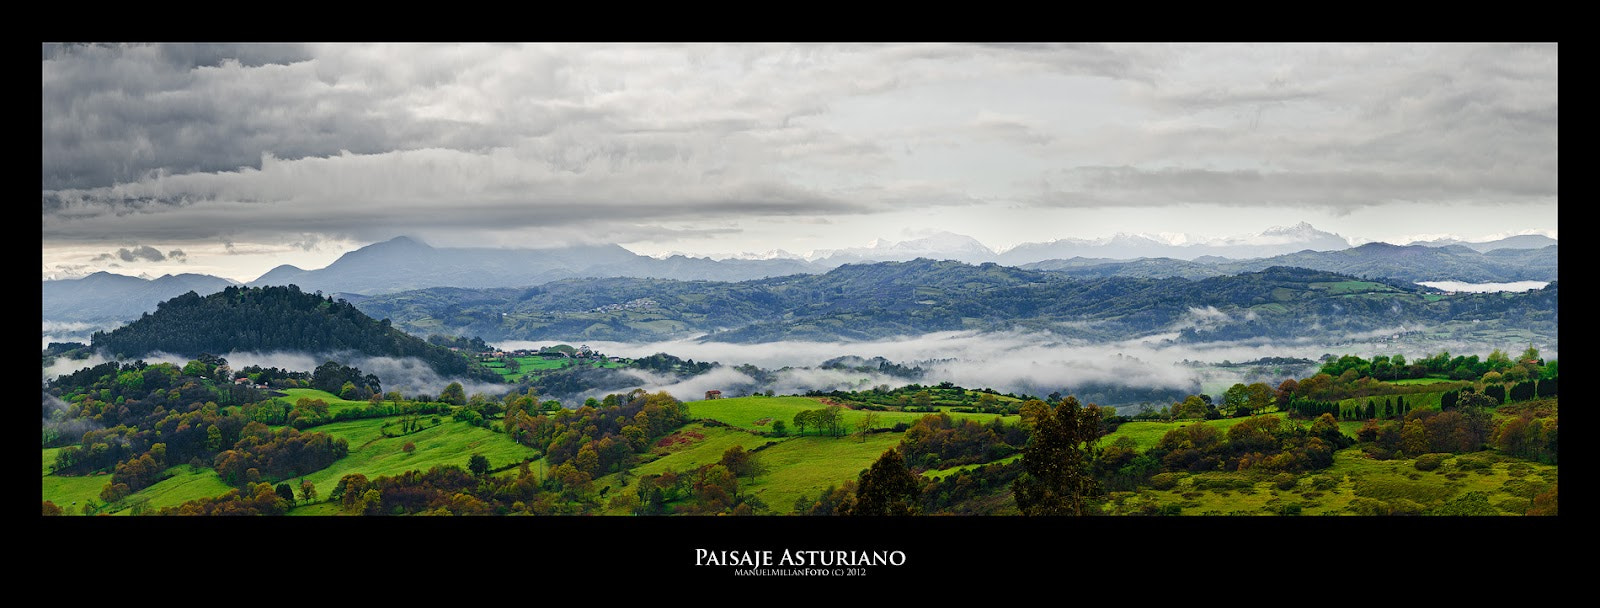 Photograph Paisaje Asturiano (Asturias Landscape) by Manuel Millán on 500px